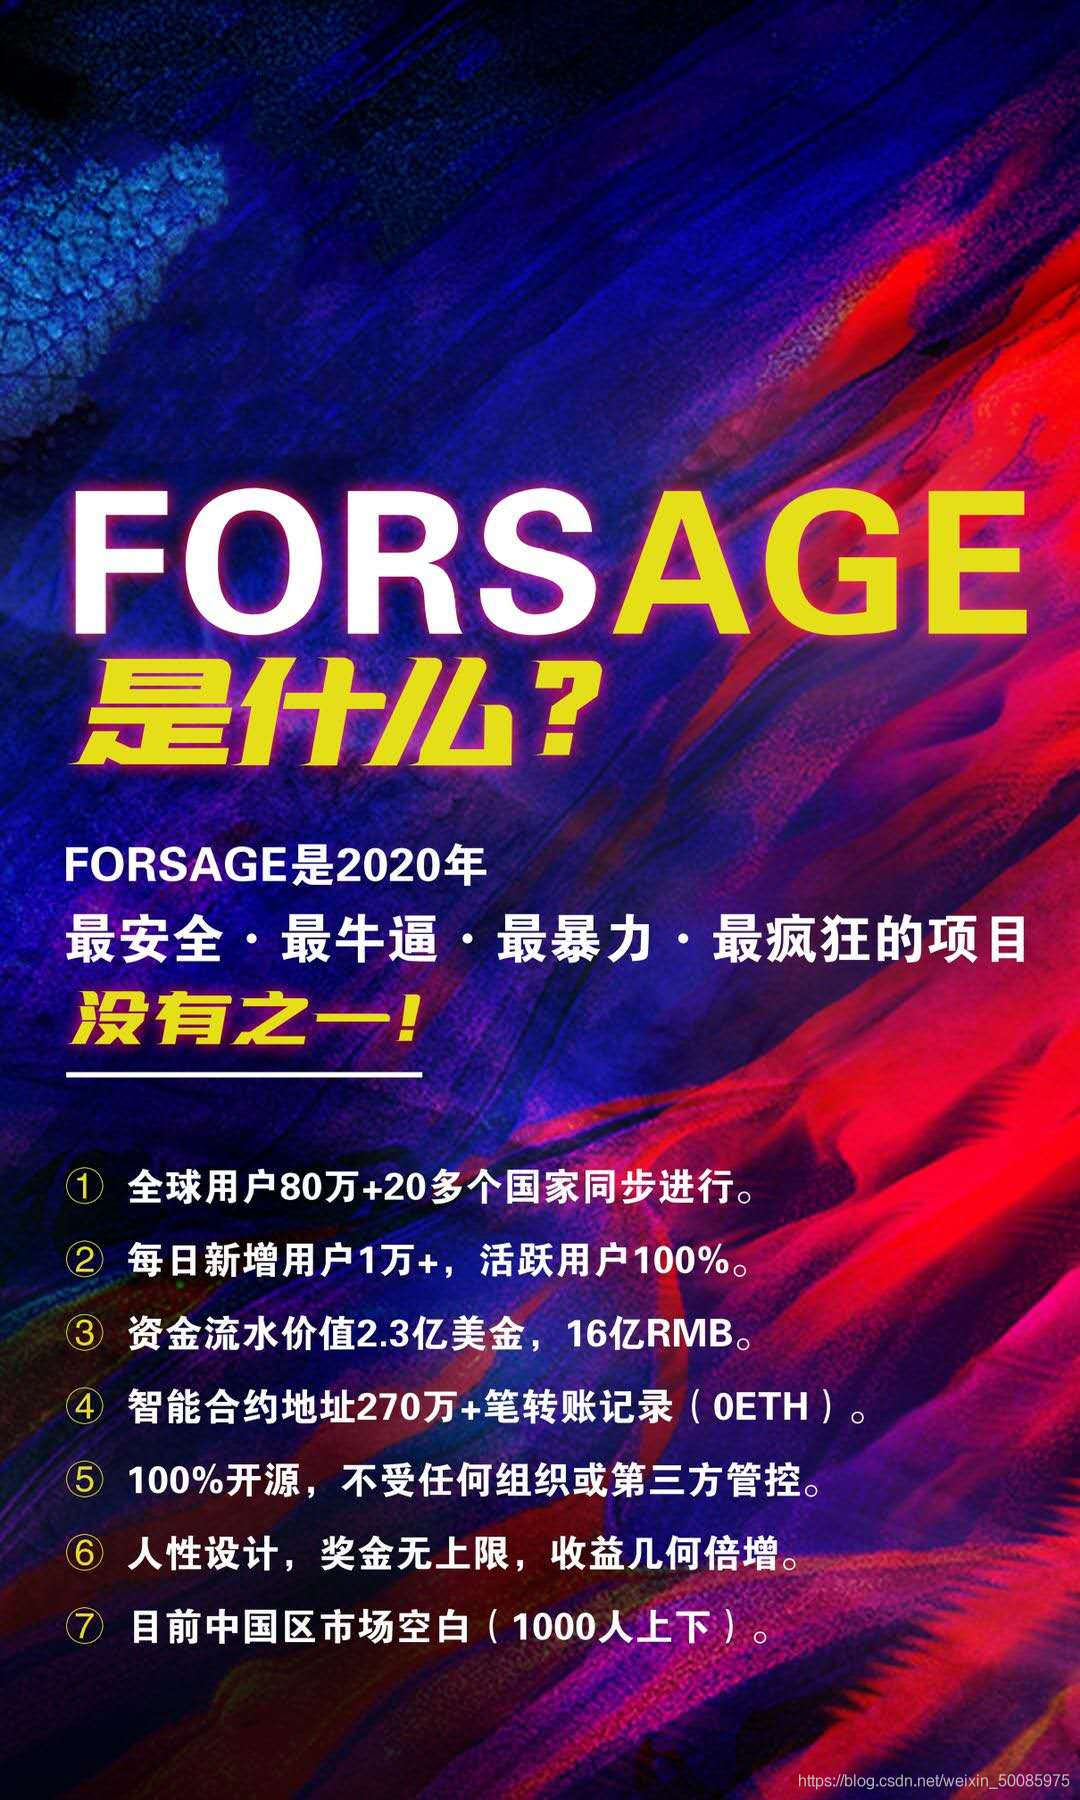 Forsage智能合约怎么玩的weixin50085975的博客-forsage